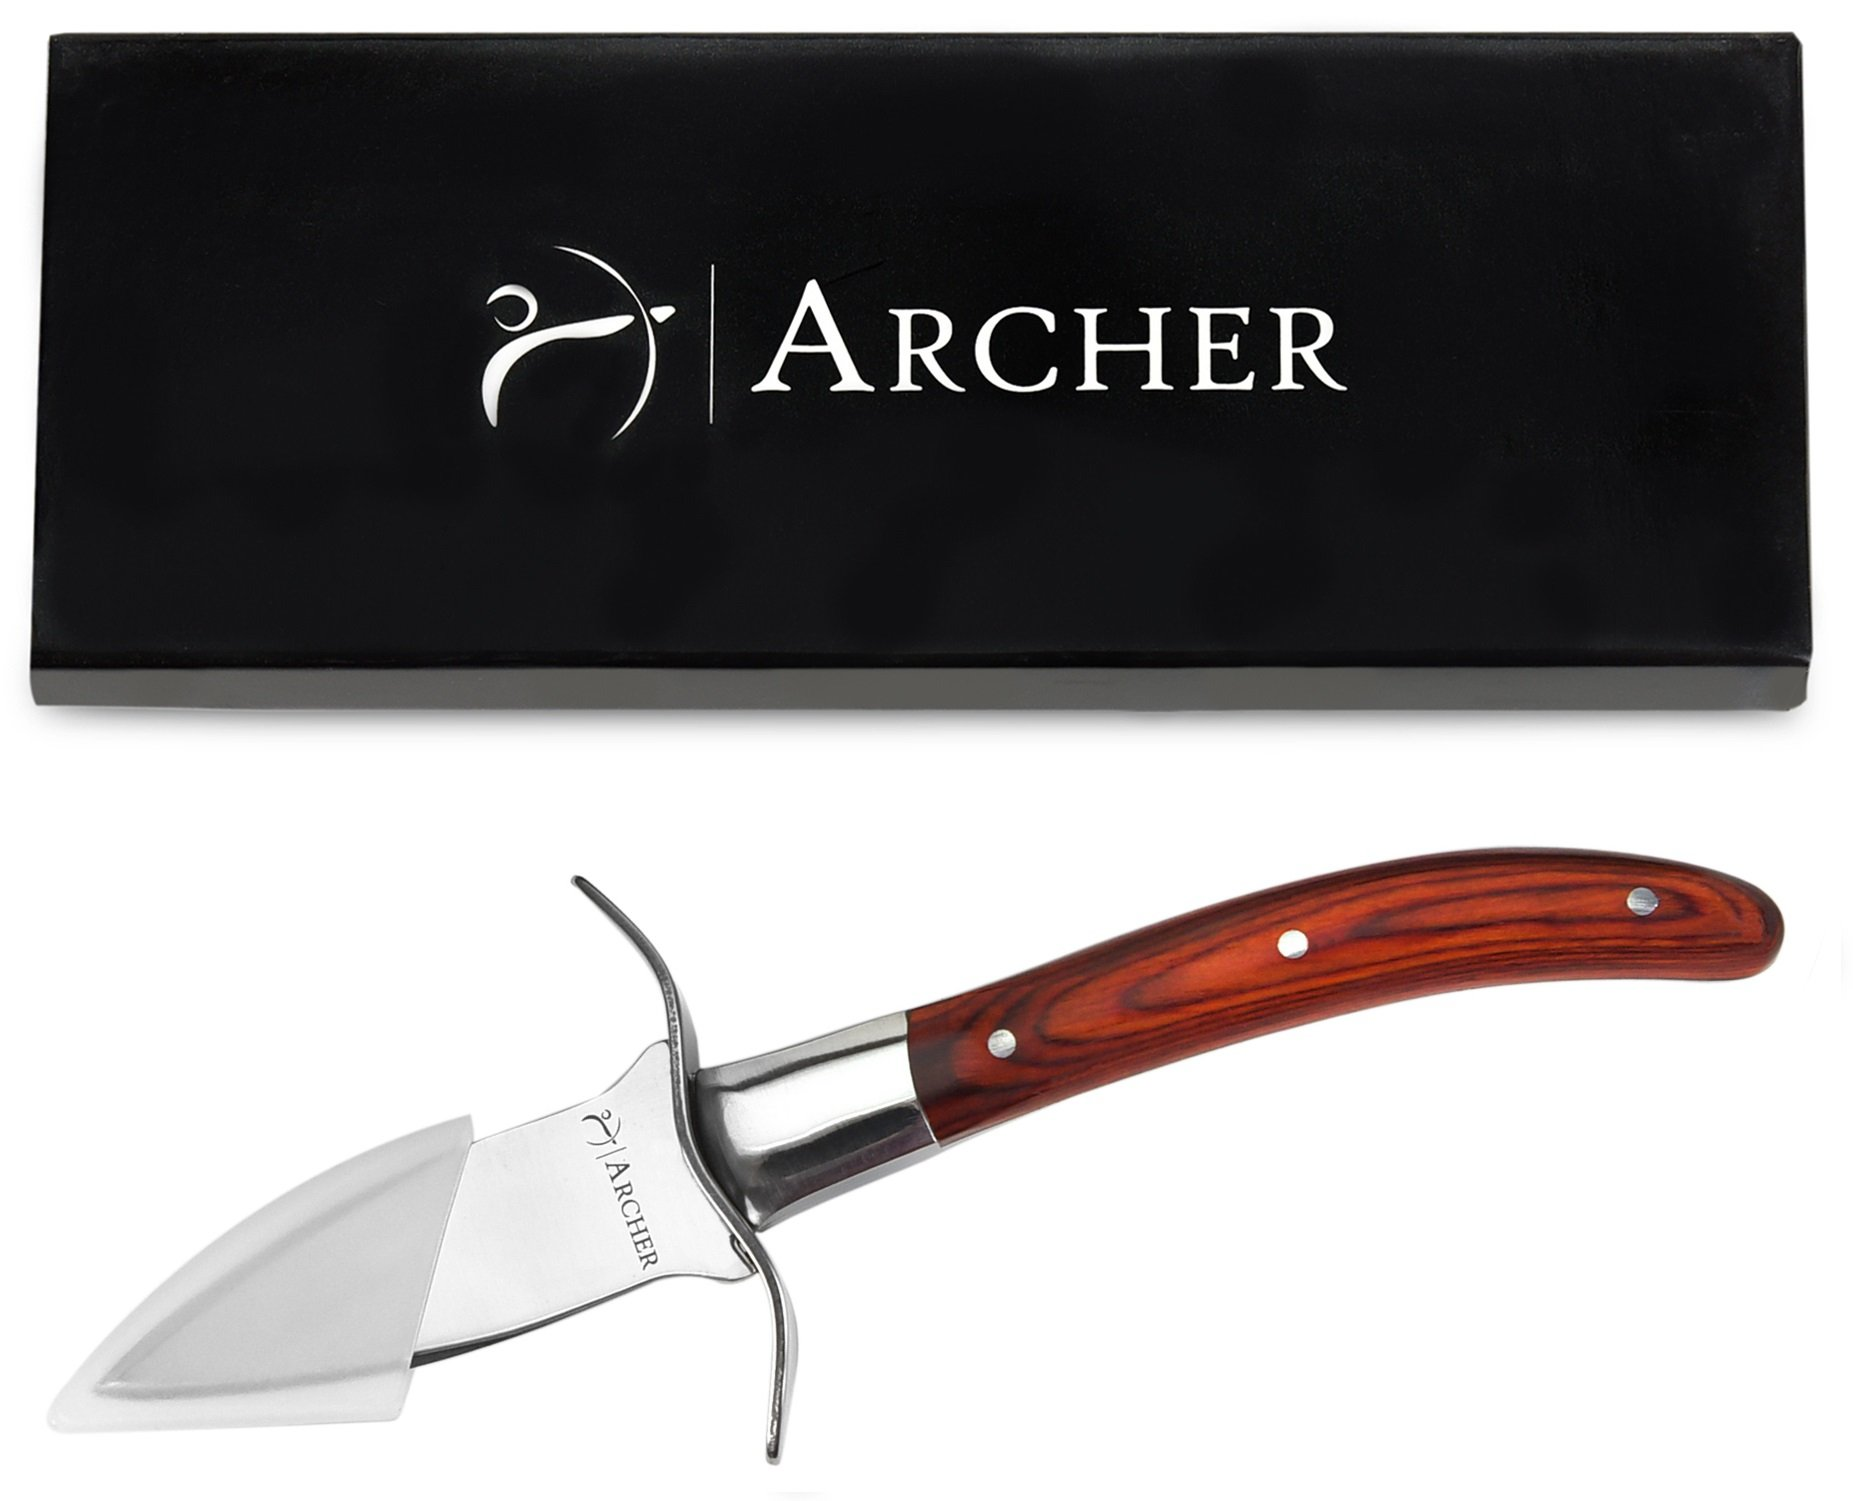 Oyster Knife by Archer - Premium Oyster Shucking Knife in Gift Box with Pakka Wood Handle, Mirror Finish Full Tang Blade, Hand-guard - Beautifully Made Compact Design Oyster Shell Shucker/Opener by Archer